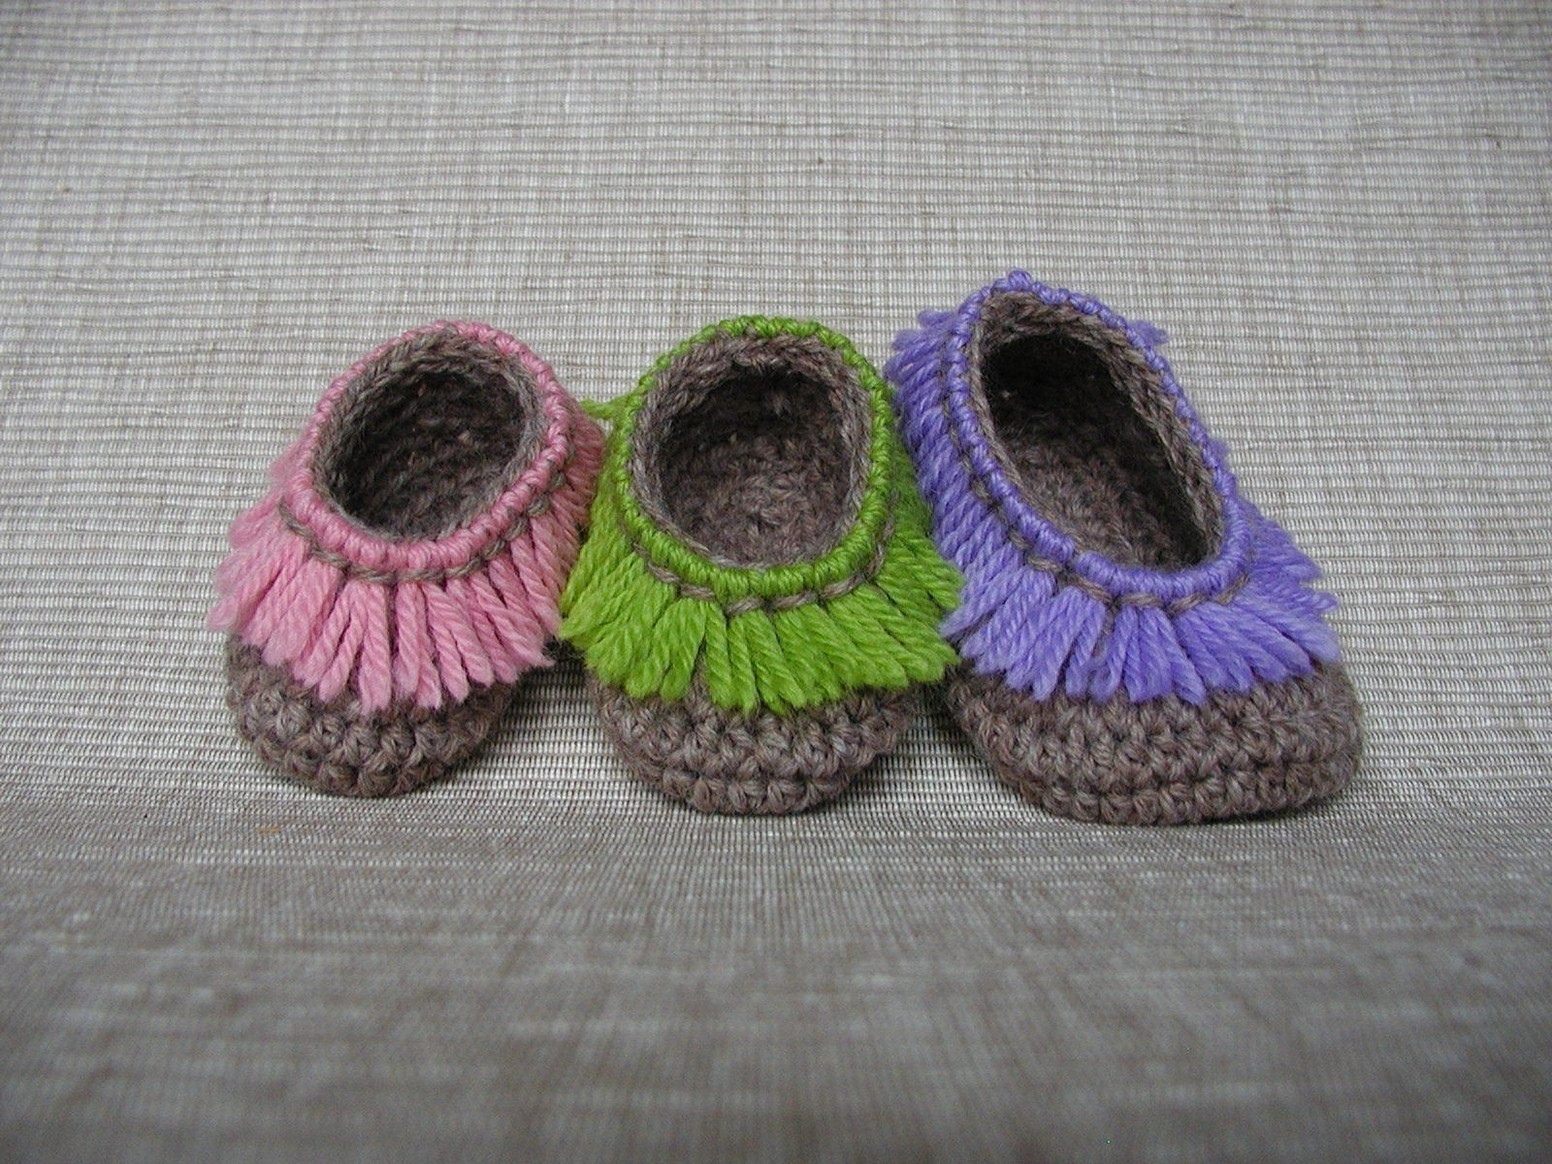 Crochet for Baby Girl Awesome Crochet Baby Flip Flops for Boys and Girls fortable Wear Of Top 41 Pics Crochet for Baby Girl